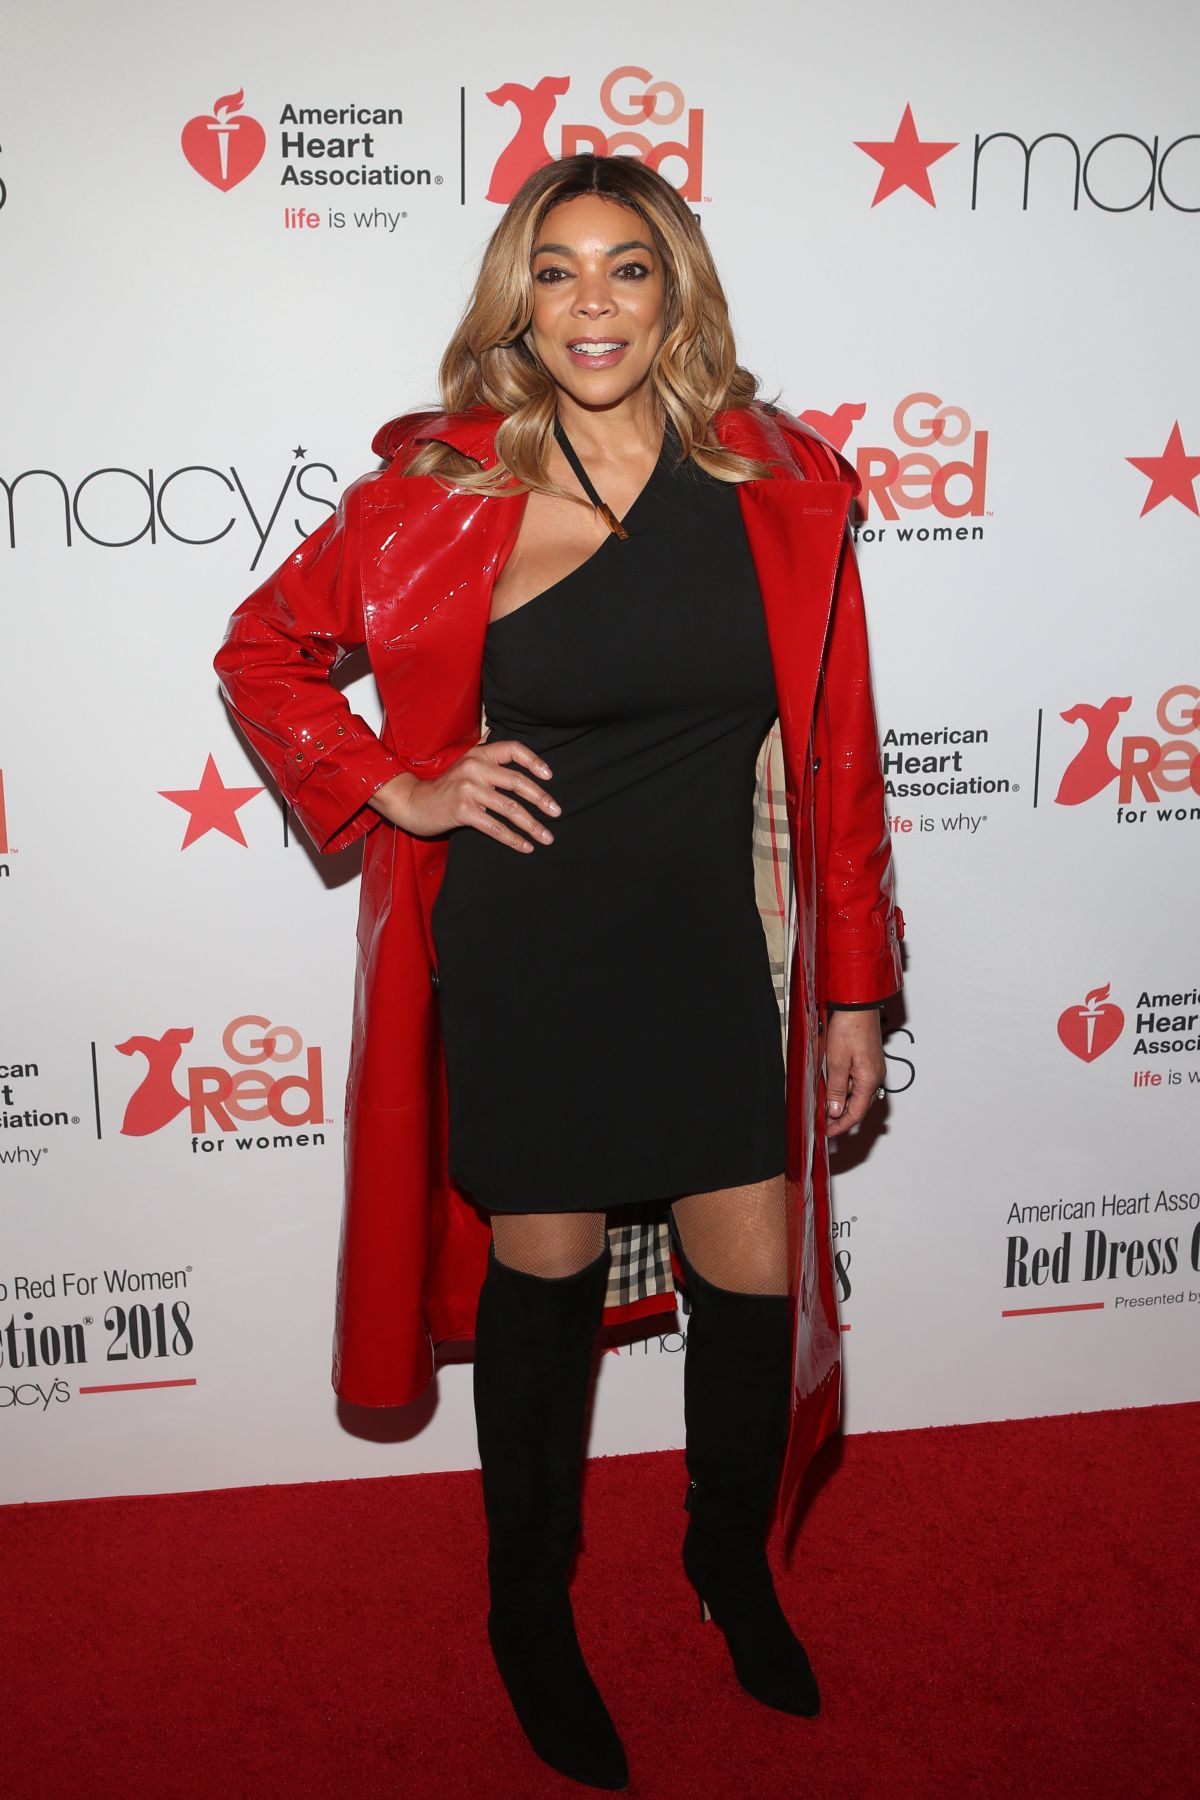 ad26f2cb9db WENDY WILLIAMS at Go Red for Women Red Dress Collection 2018 Presented by  Macy s in New York 02 08 2018